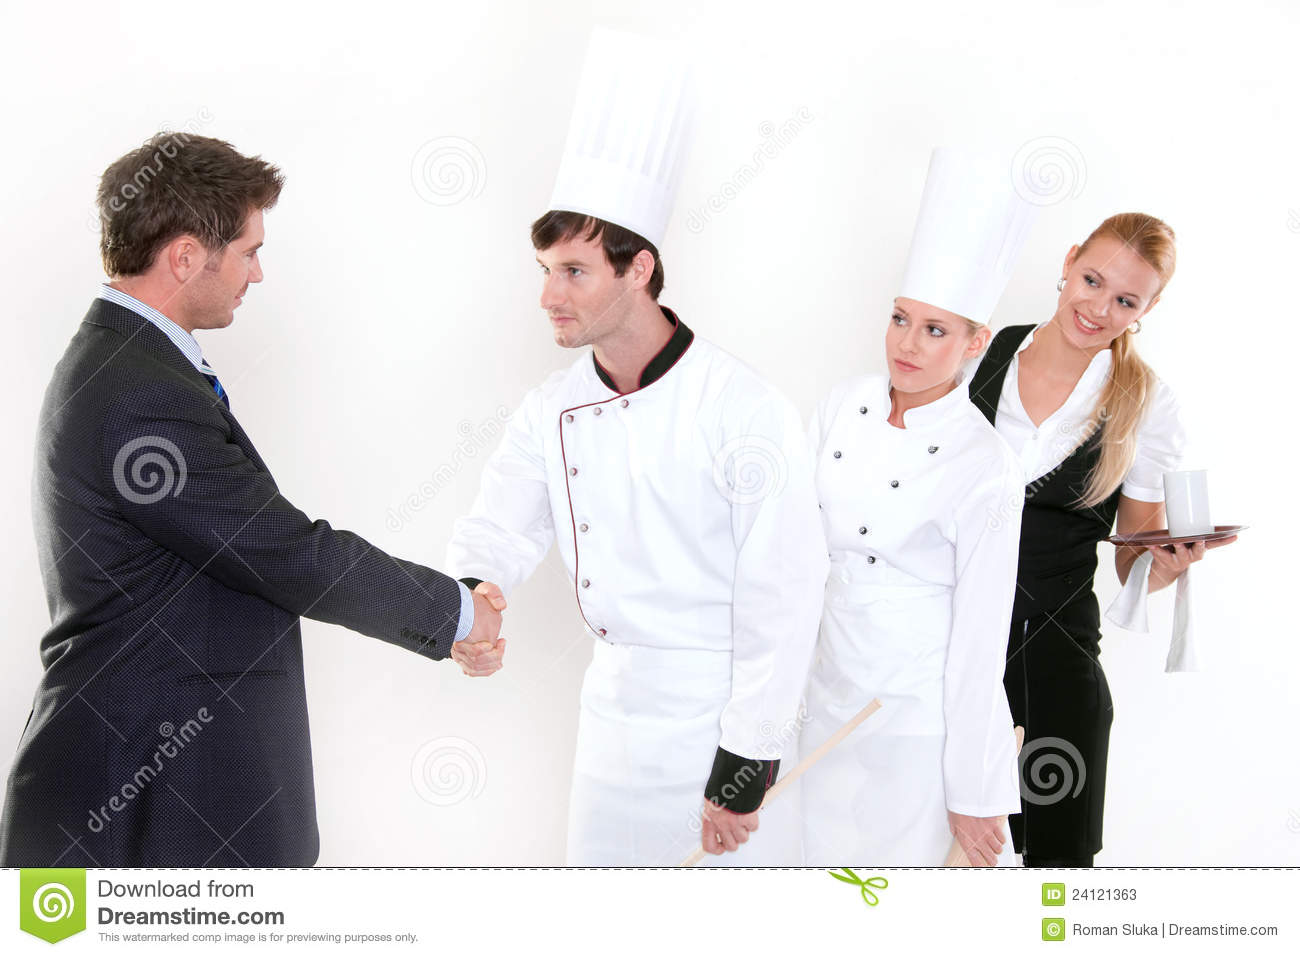 Restaurant Kitchen Staff handshake - restaurant manager and kitchen staff stock photos